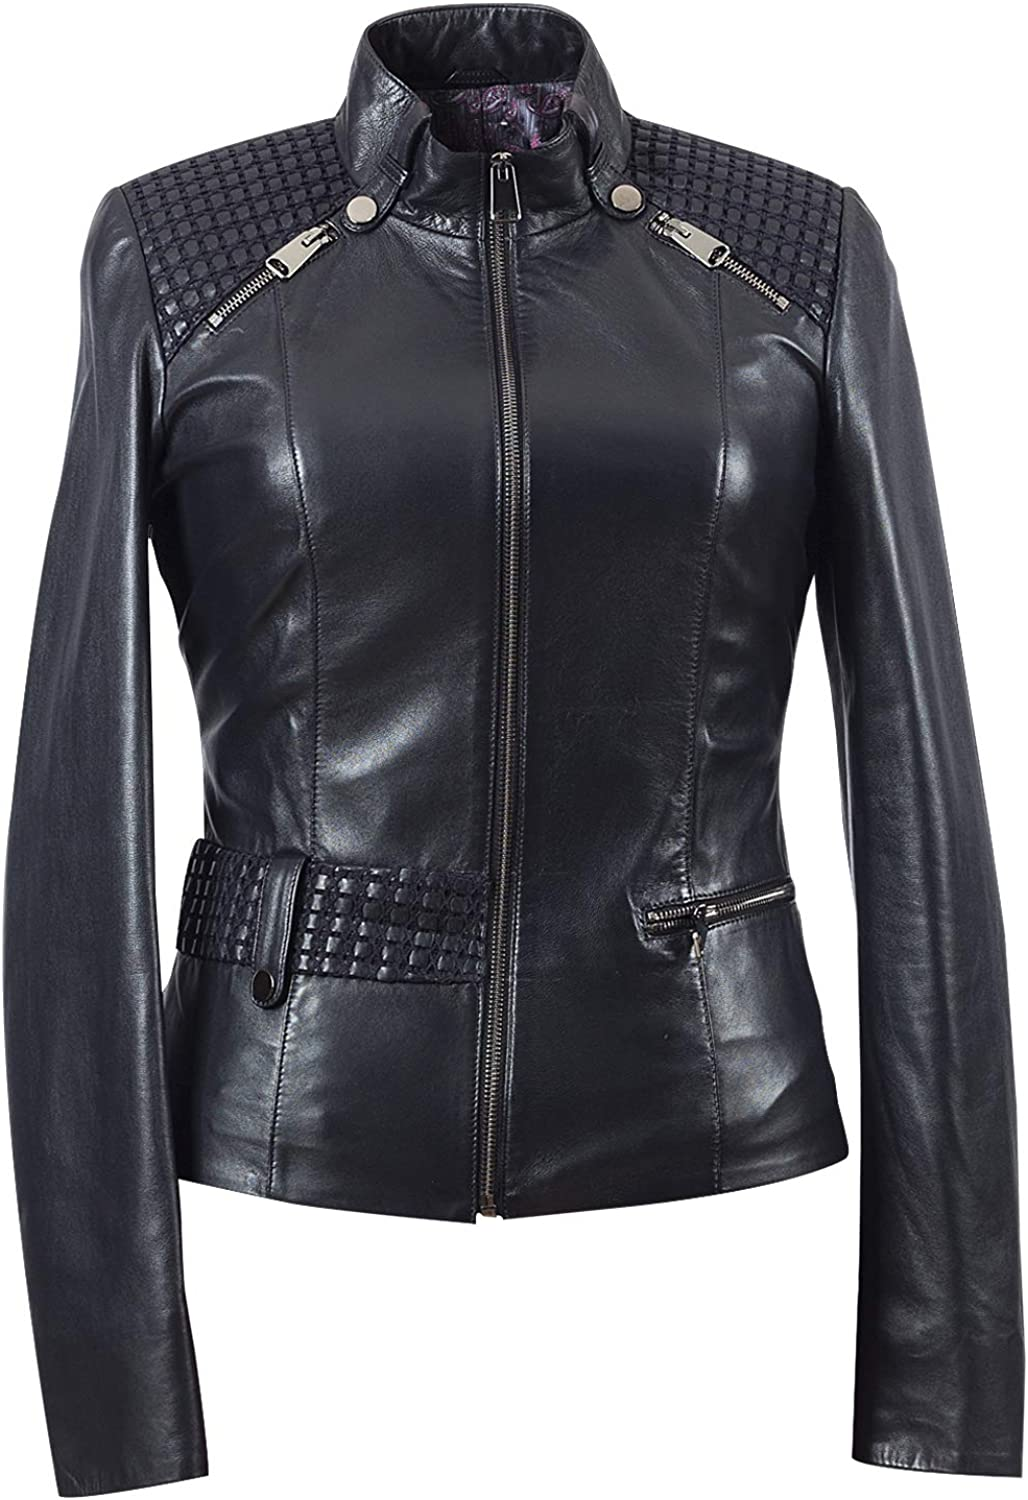 Alizya Leather Jacket for Women Regular Plus Size  Handmade